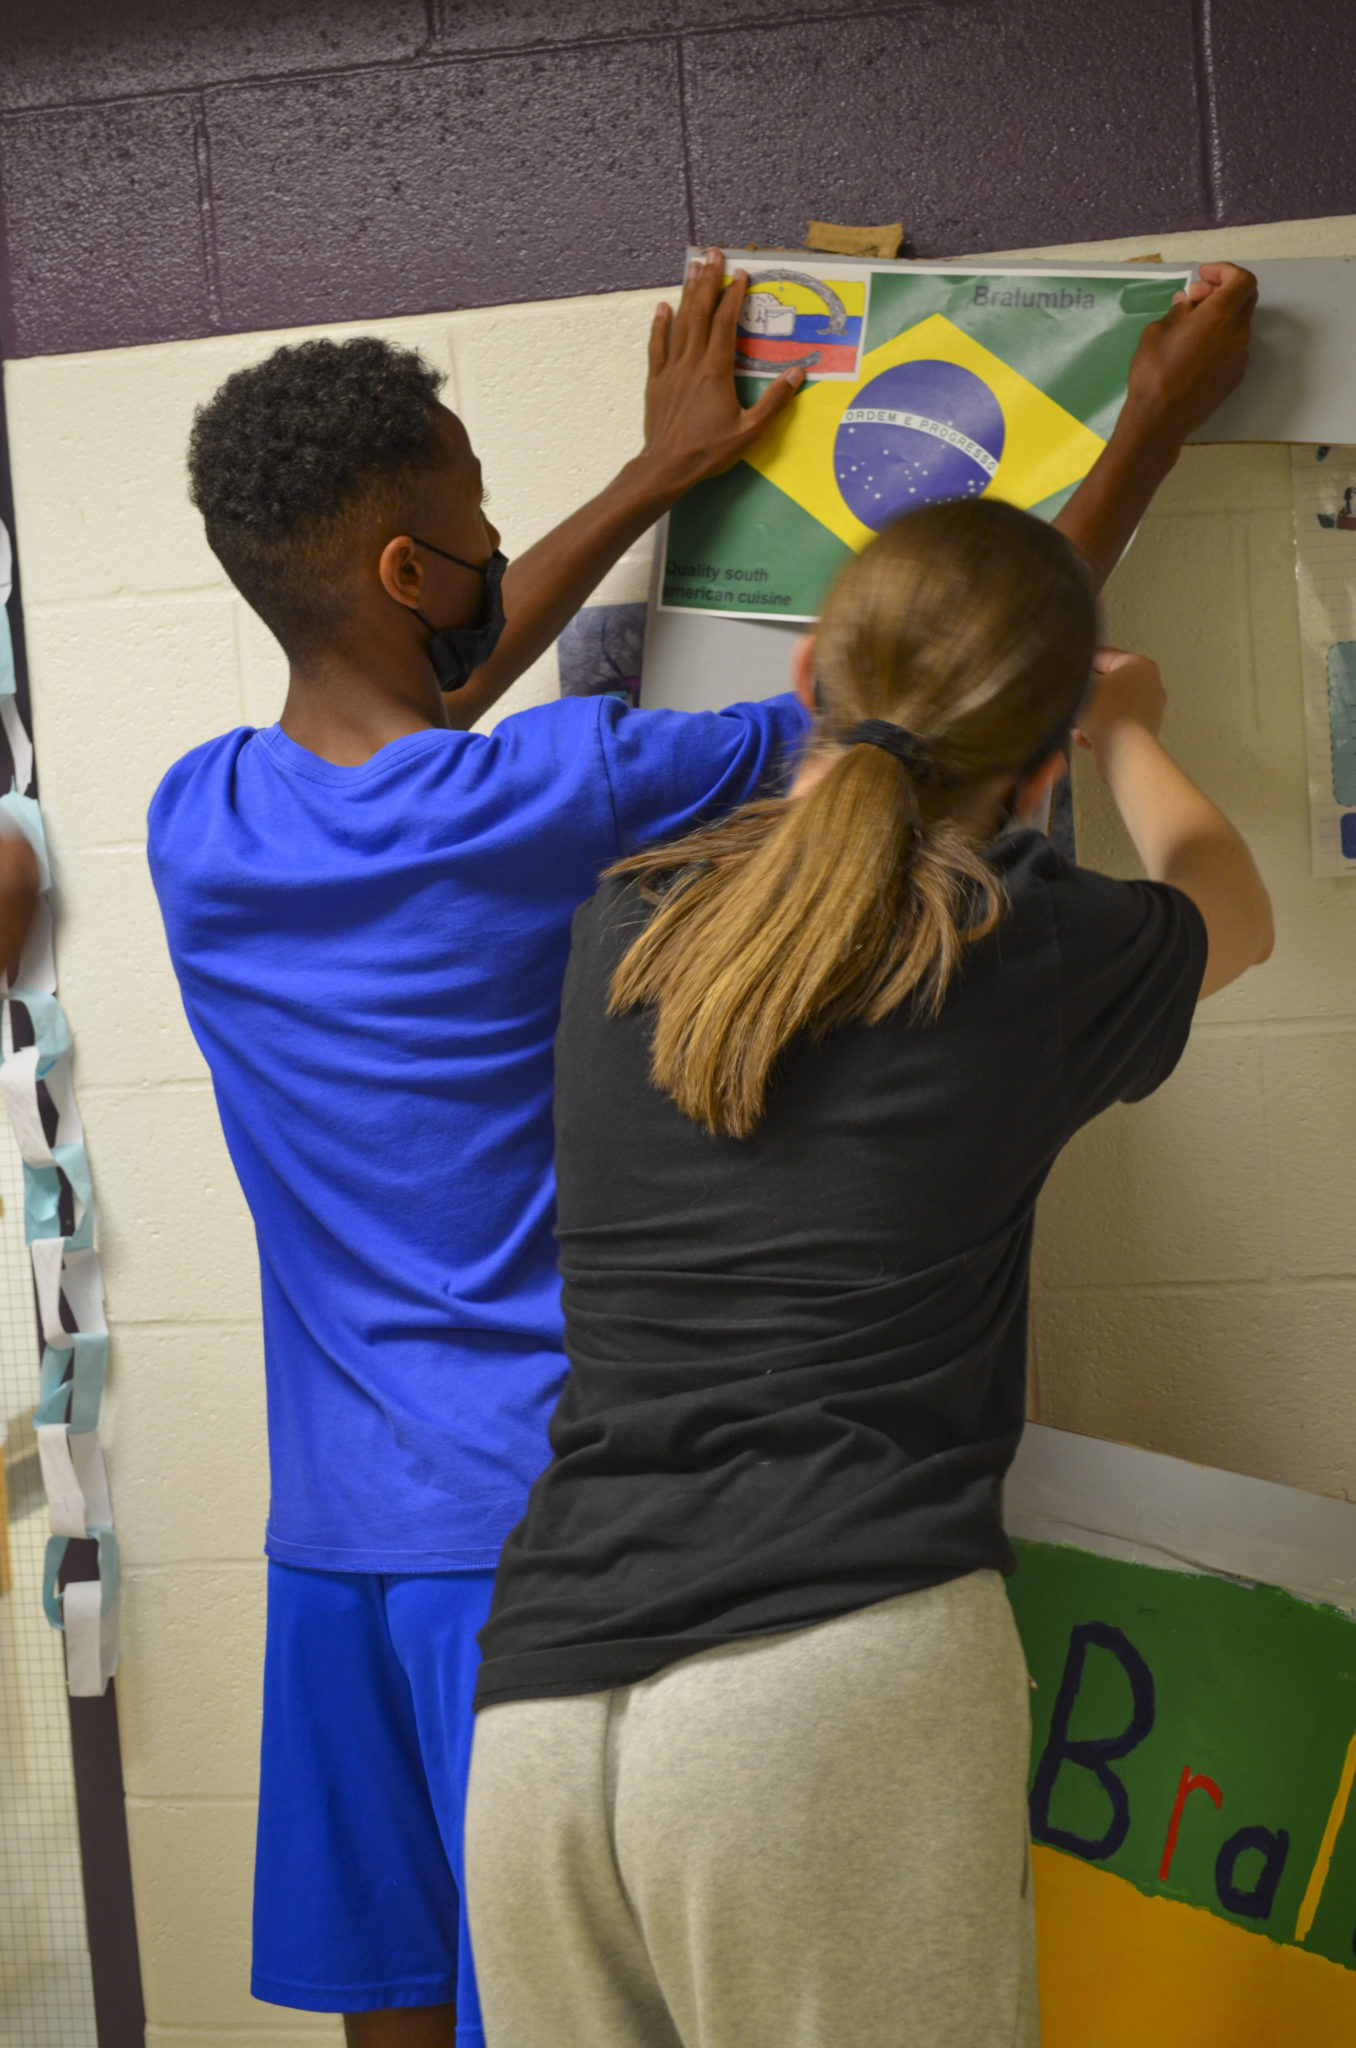 students hanging current projects on wall